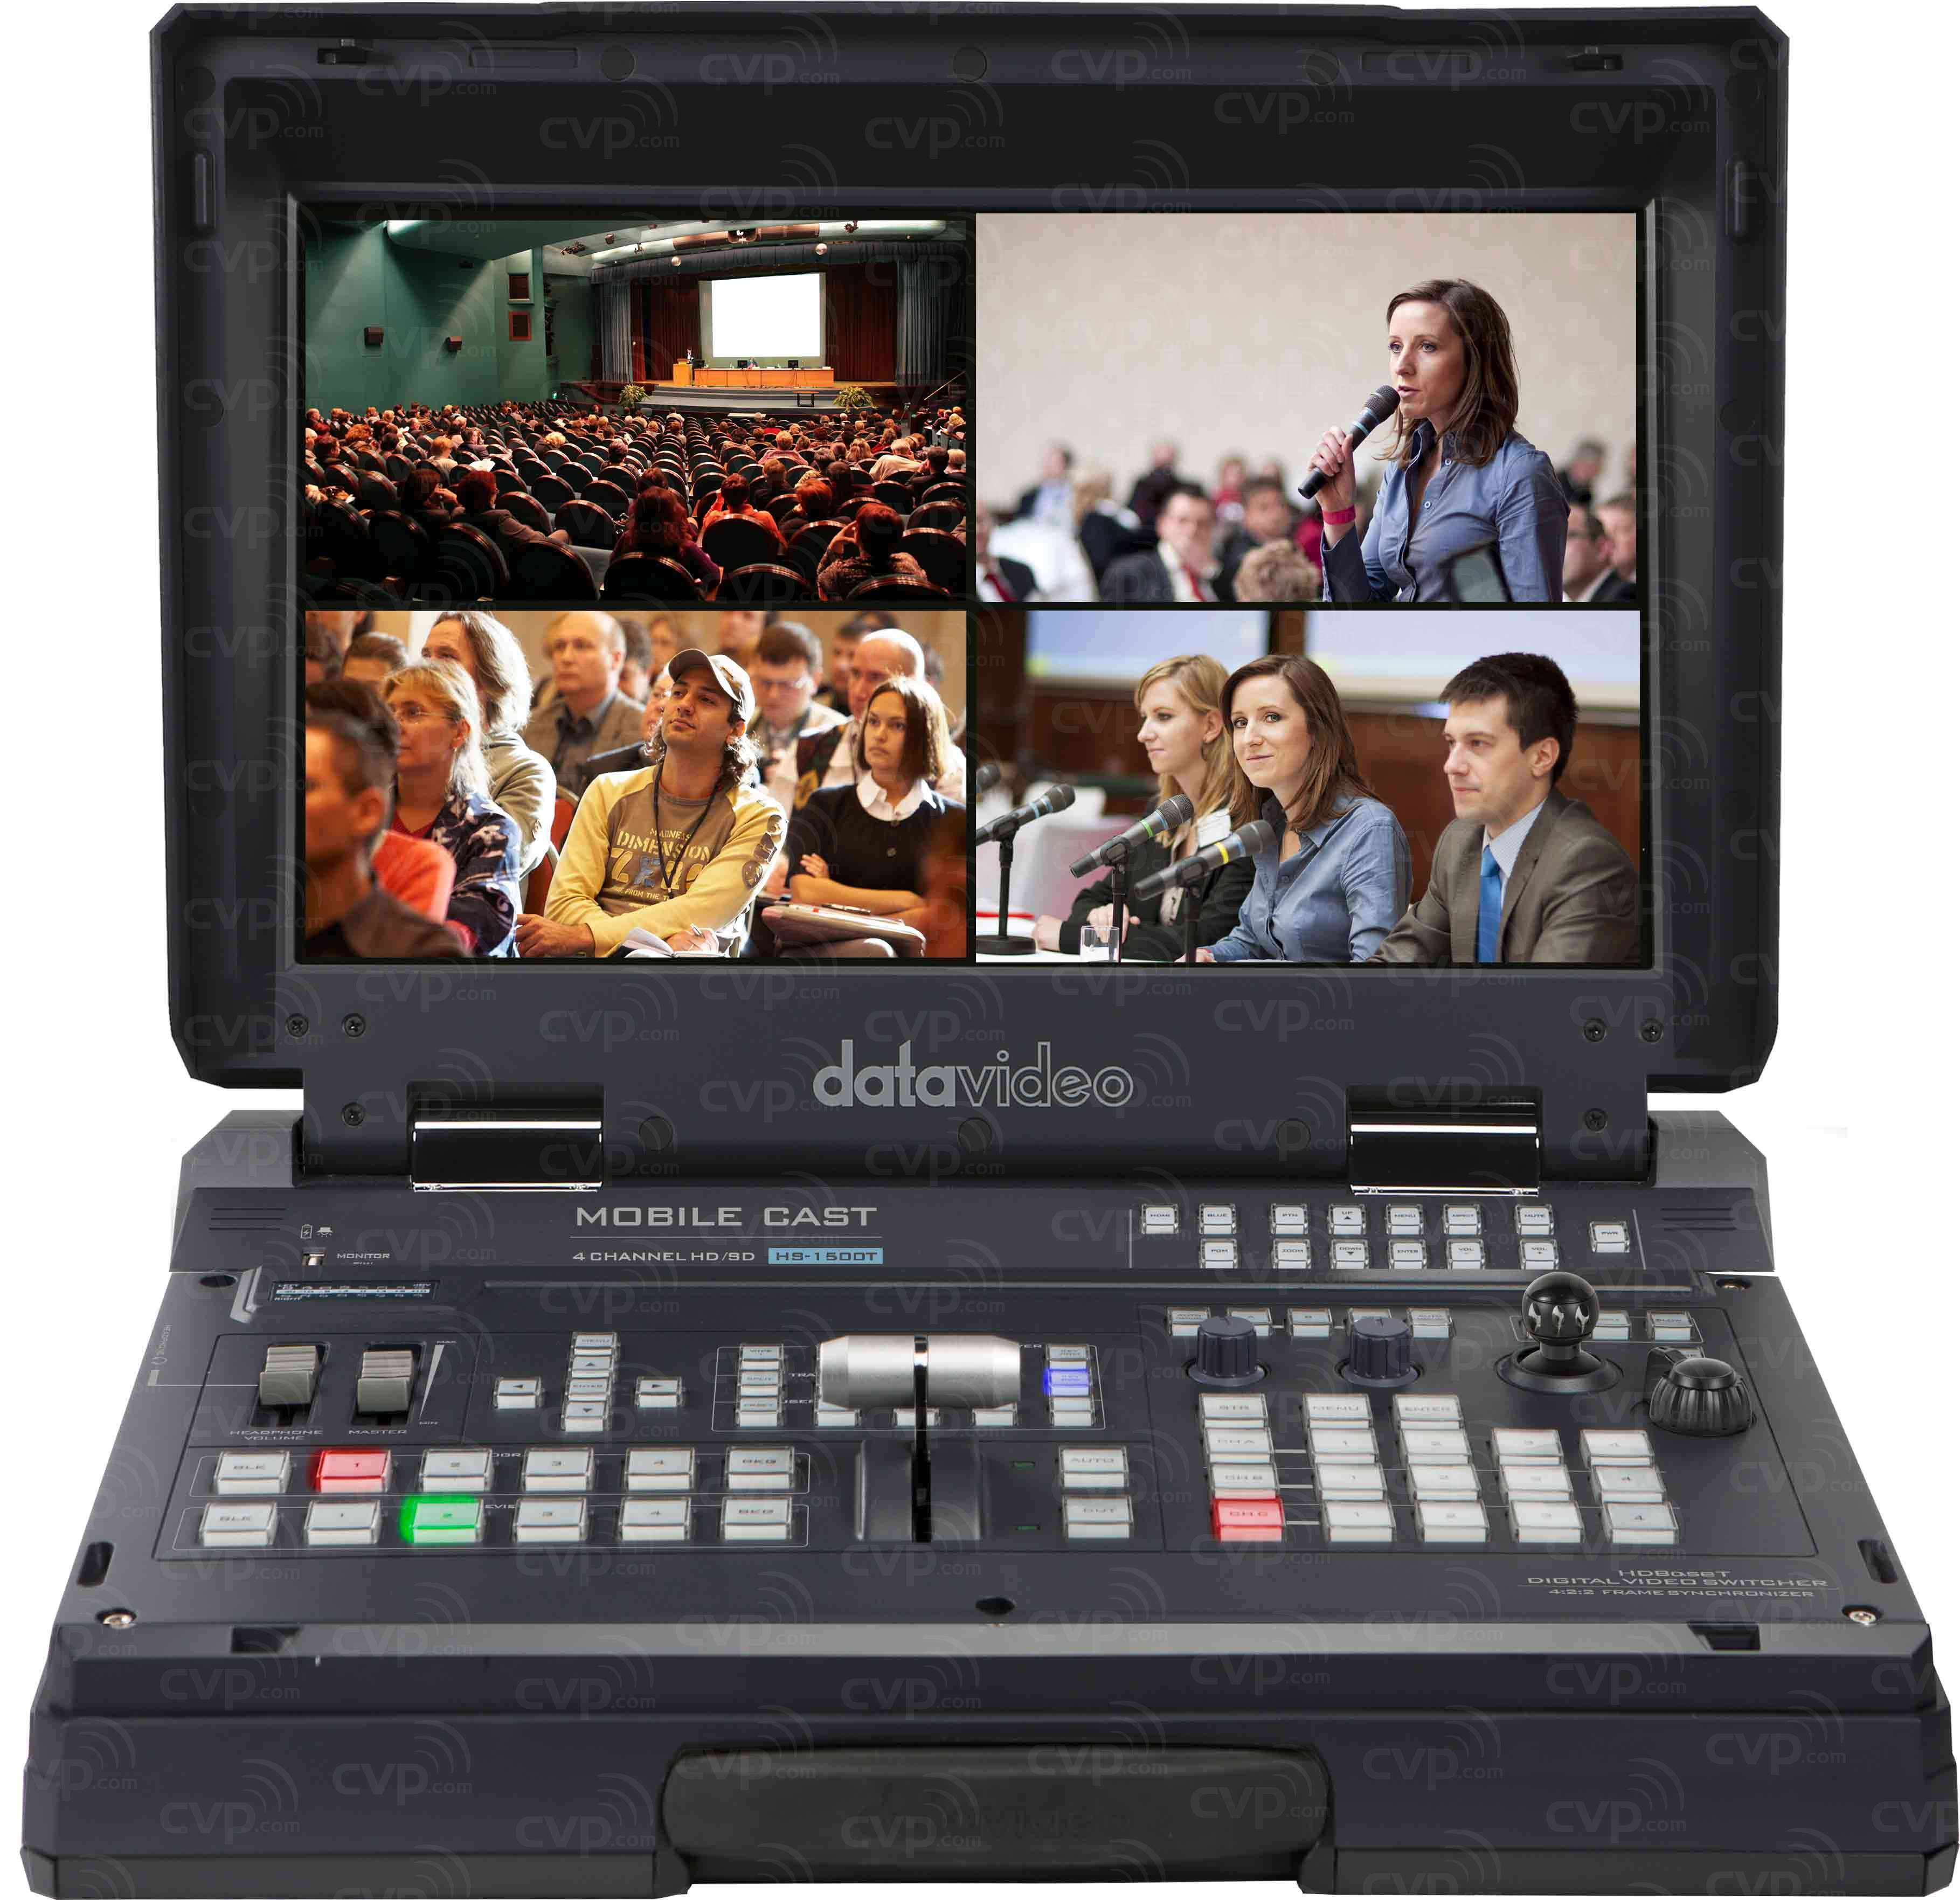 Datavideo DATA-HS1500T (DATAHS1500T) HS-1500T HDBaseT Portable Video Studio with PTZ Control